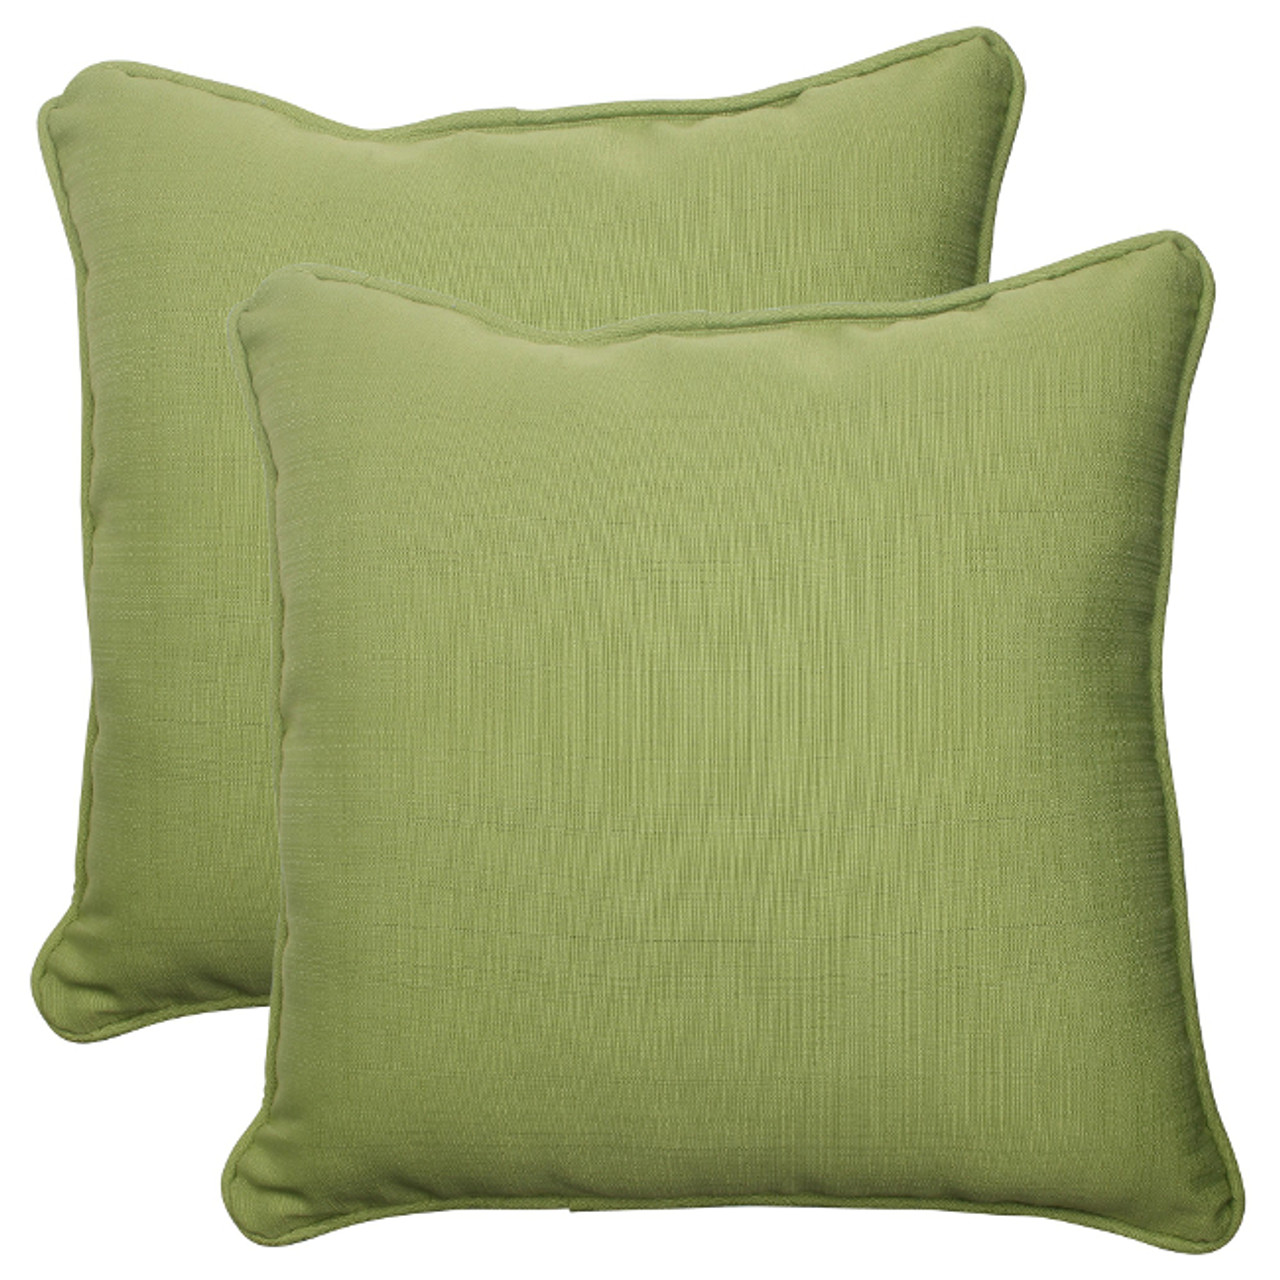 Set Of 2 Solid Olive Green Outdoor Patio Corded Square Throw Pillows 18 5 30951994